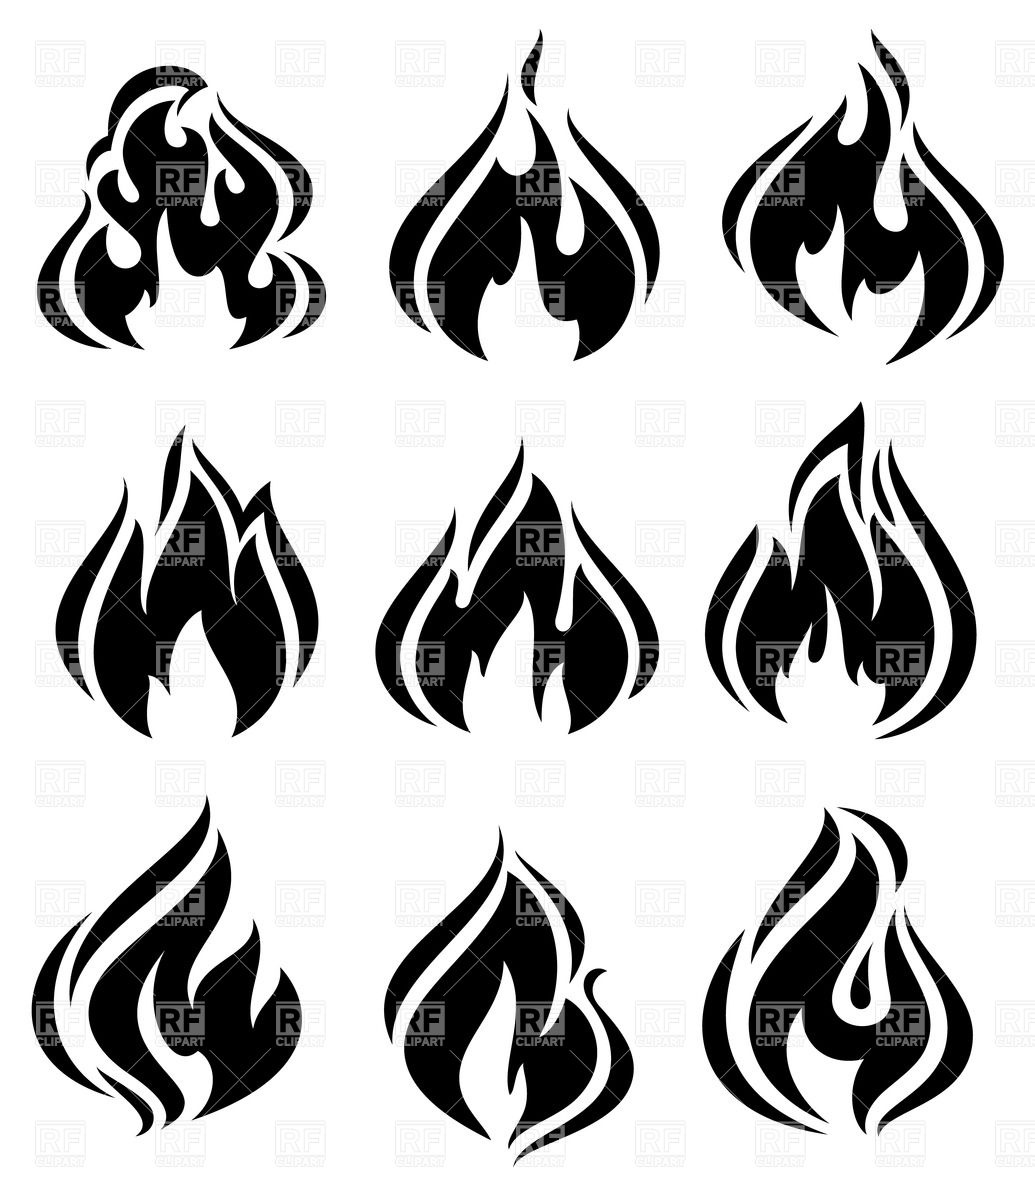 Flames clipart silhouette Black Royalty Download simple silhouettes